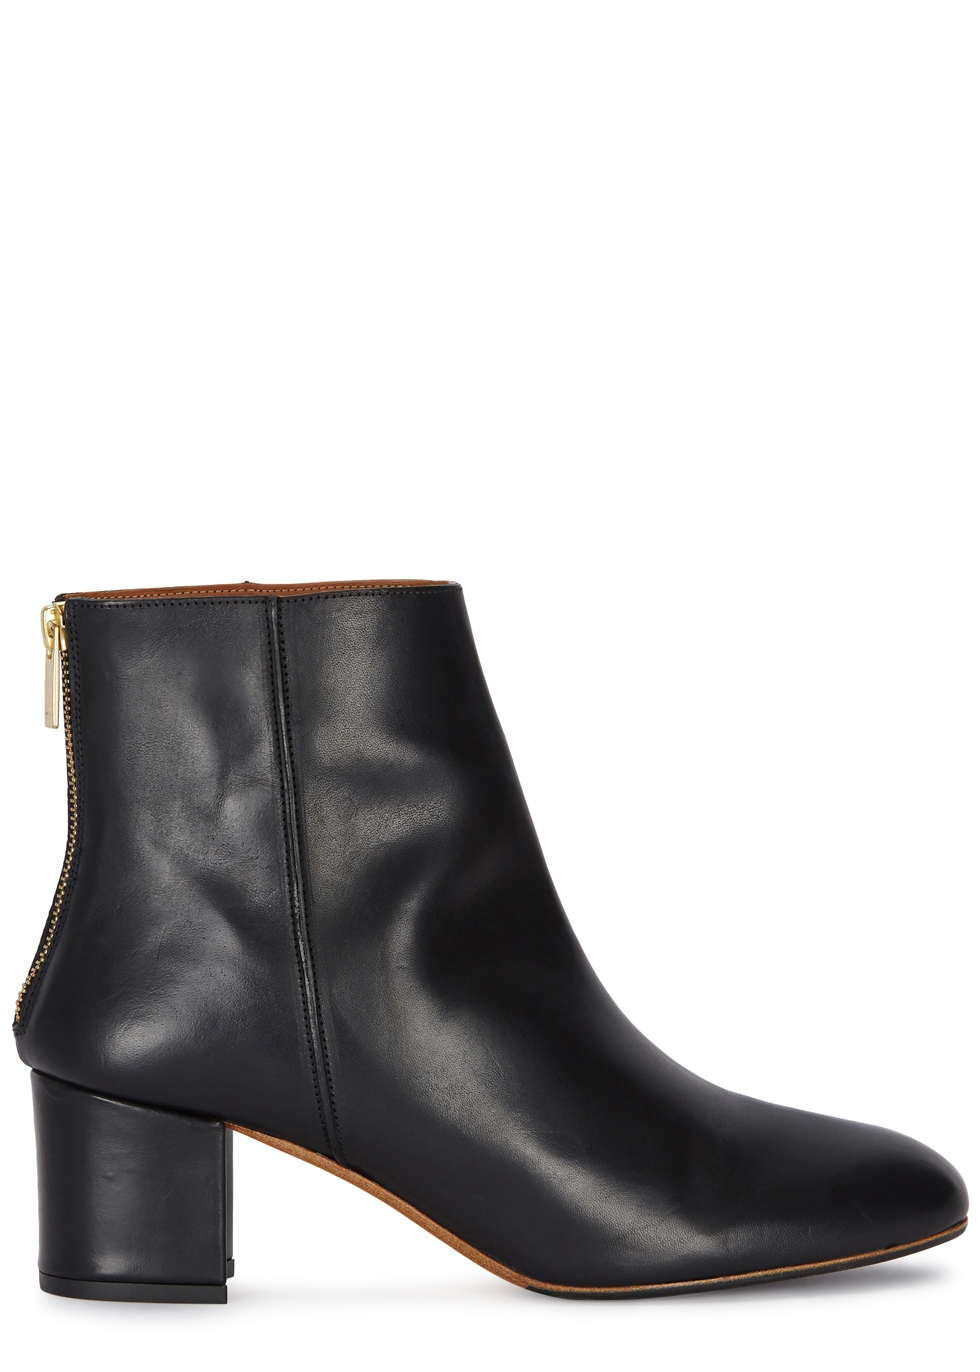 Mei 50 black leather ankle boots - ATP Atelier